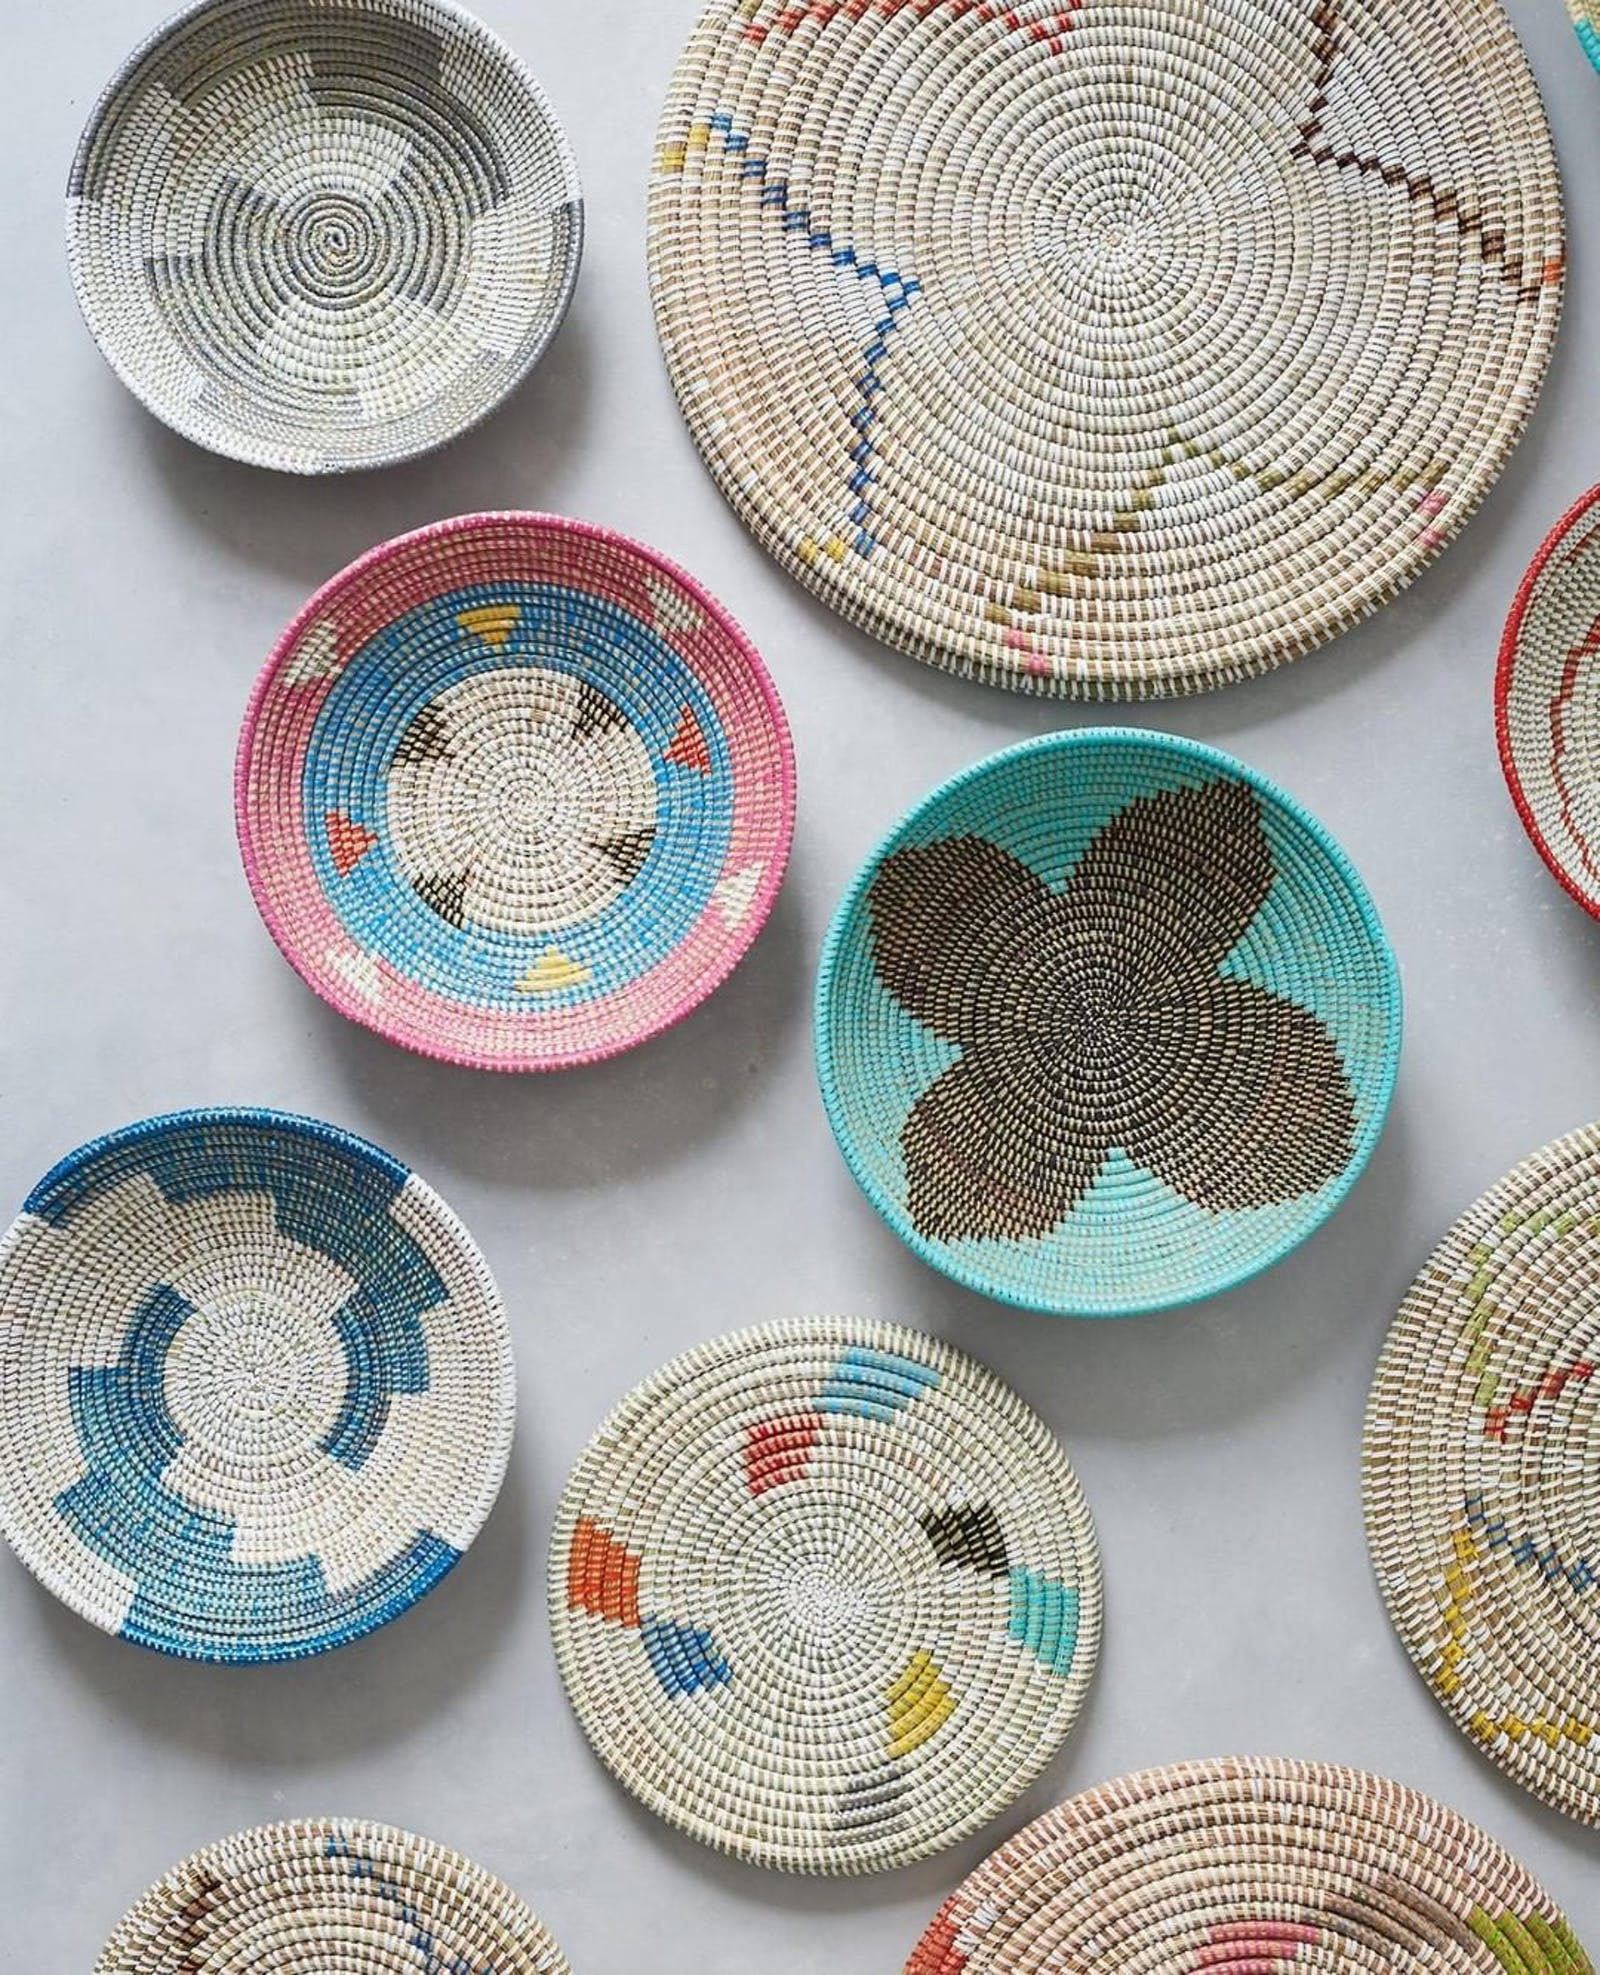 A selection of woven baskets and placemats